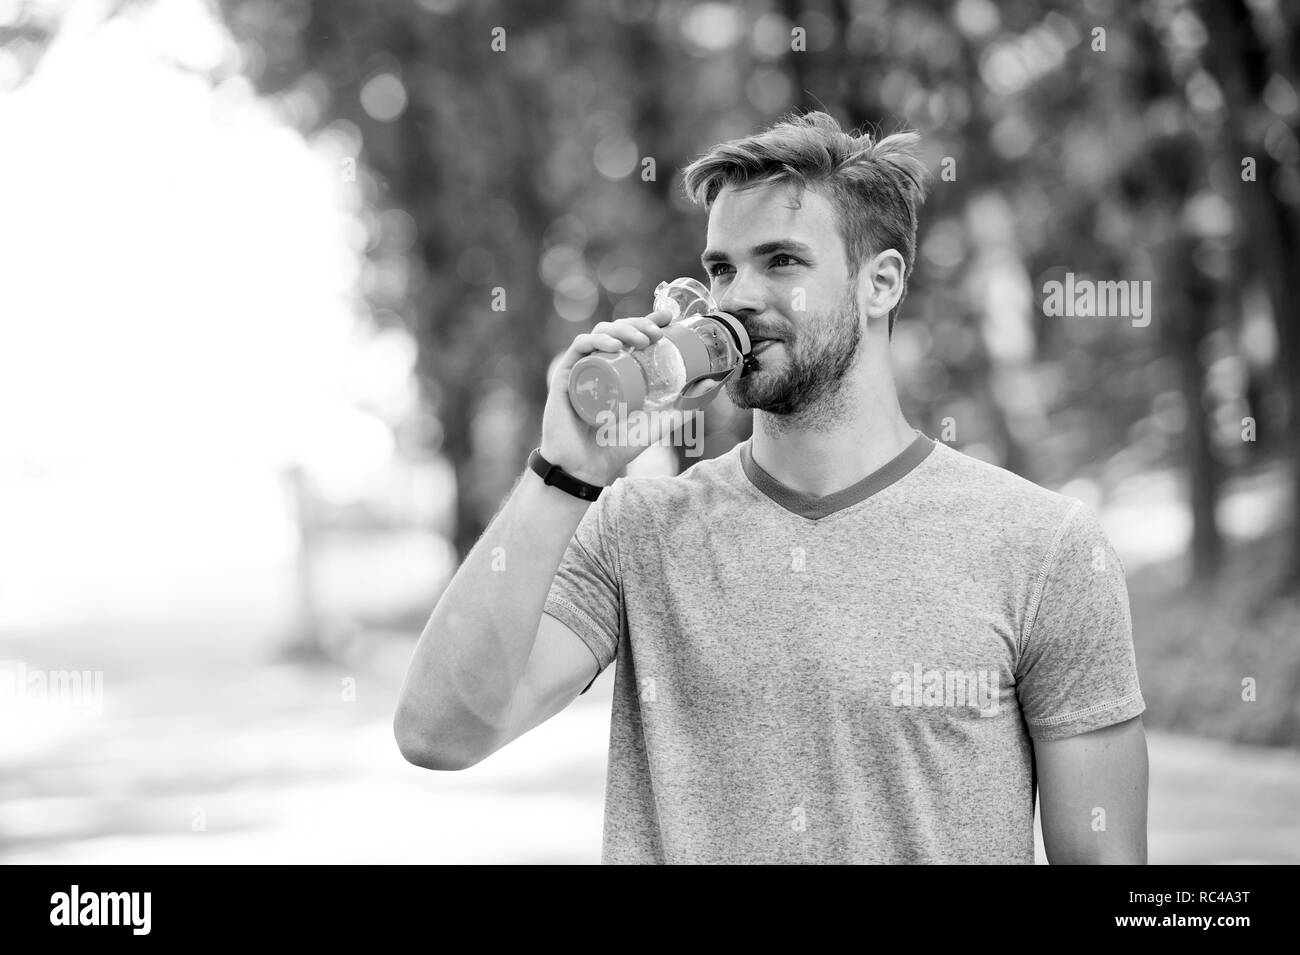 quench your thirst. man feel thirst. man drink water because of thirst. thirst feeling of man after workout - Stock Image